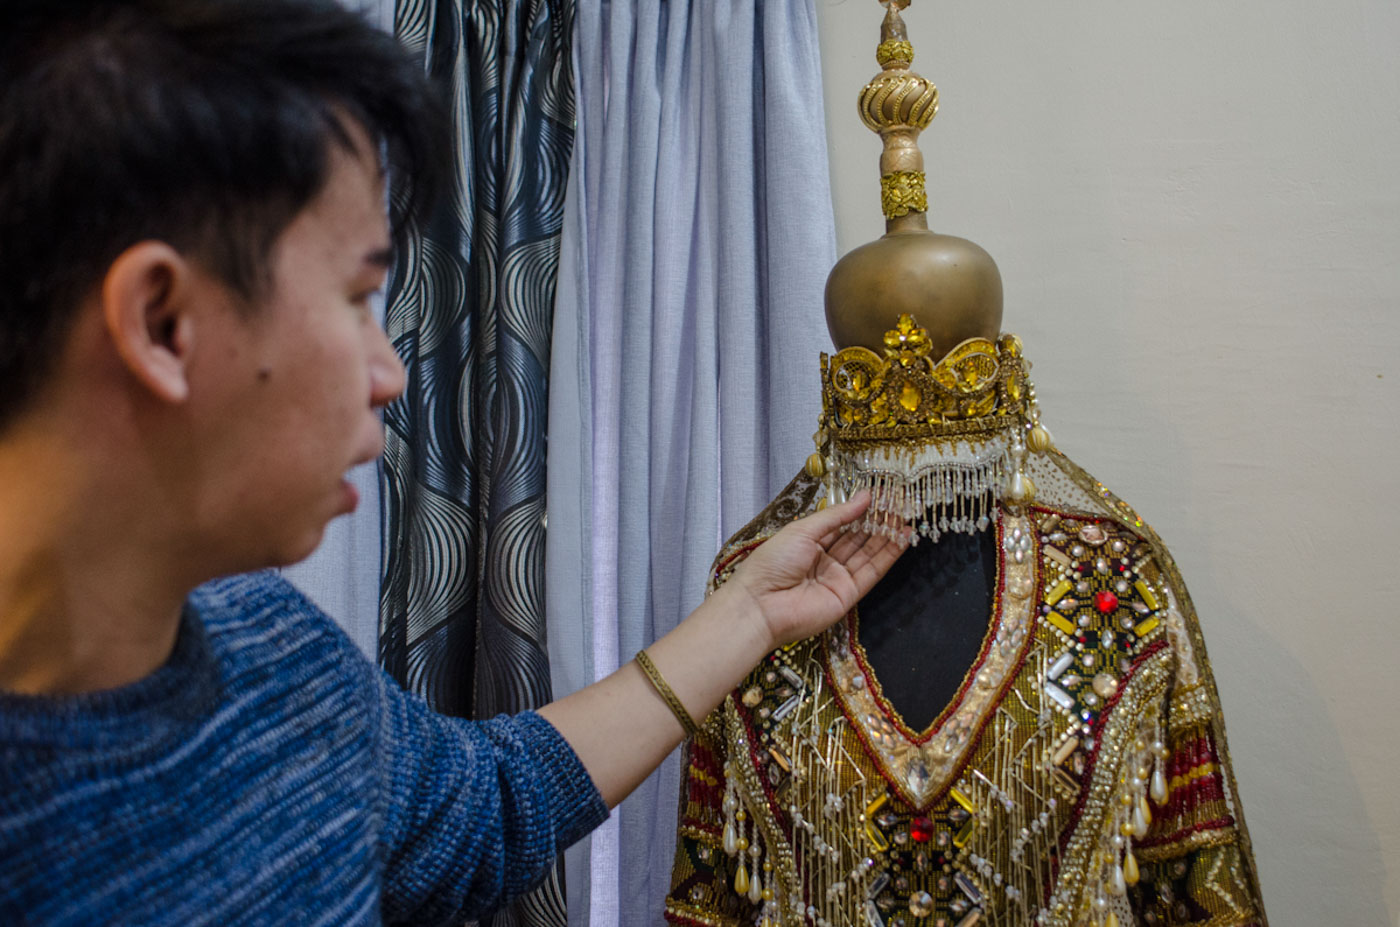 MARAWI TRIBUTE. Jearson shows the beads and embellishments in the national costume Catriona Gray wore for Bb Pilipinas.